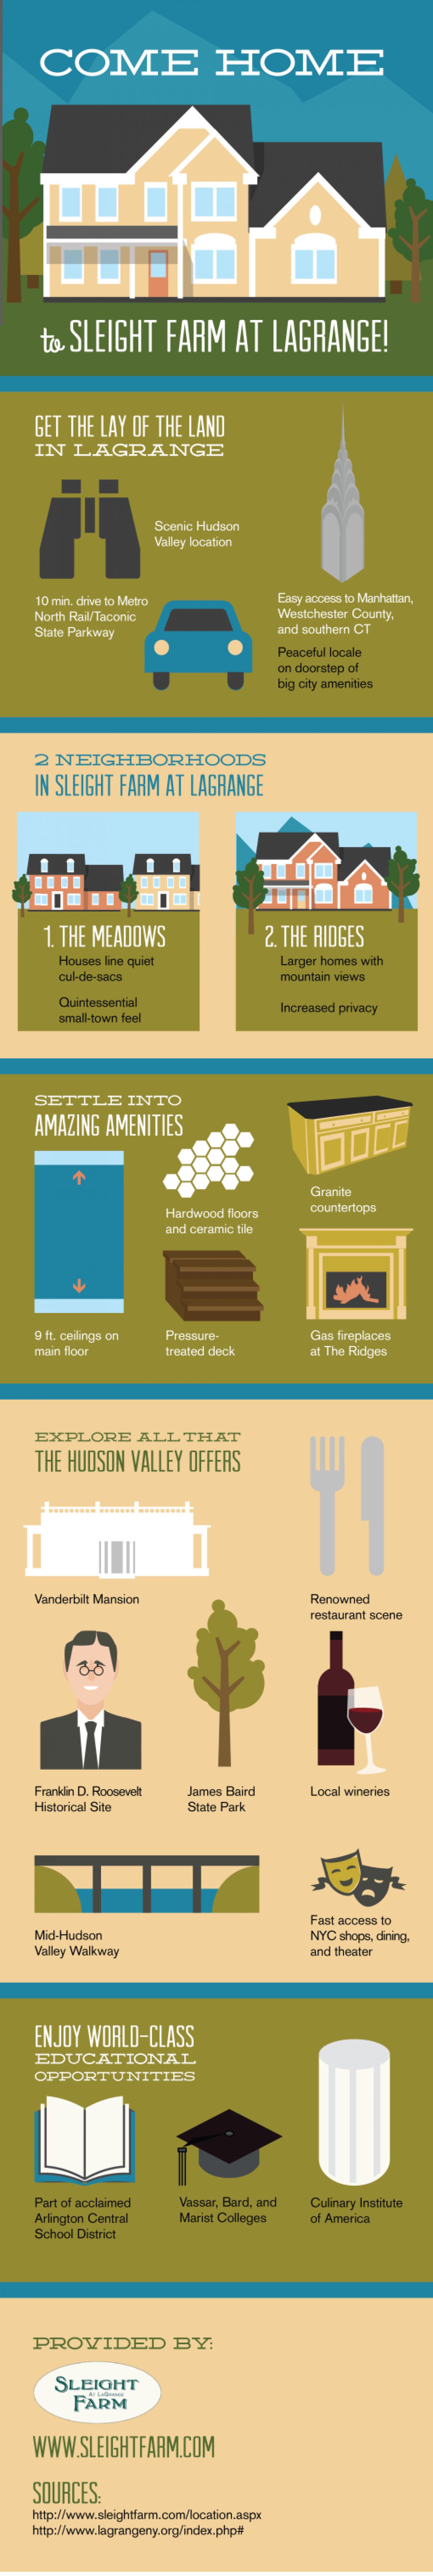 Come Home to Sleight Farm at LaGrange!  Infographic